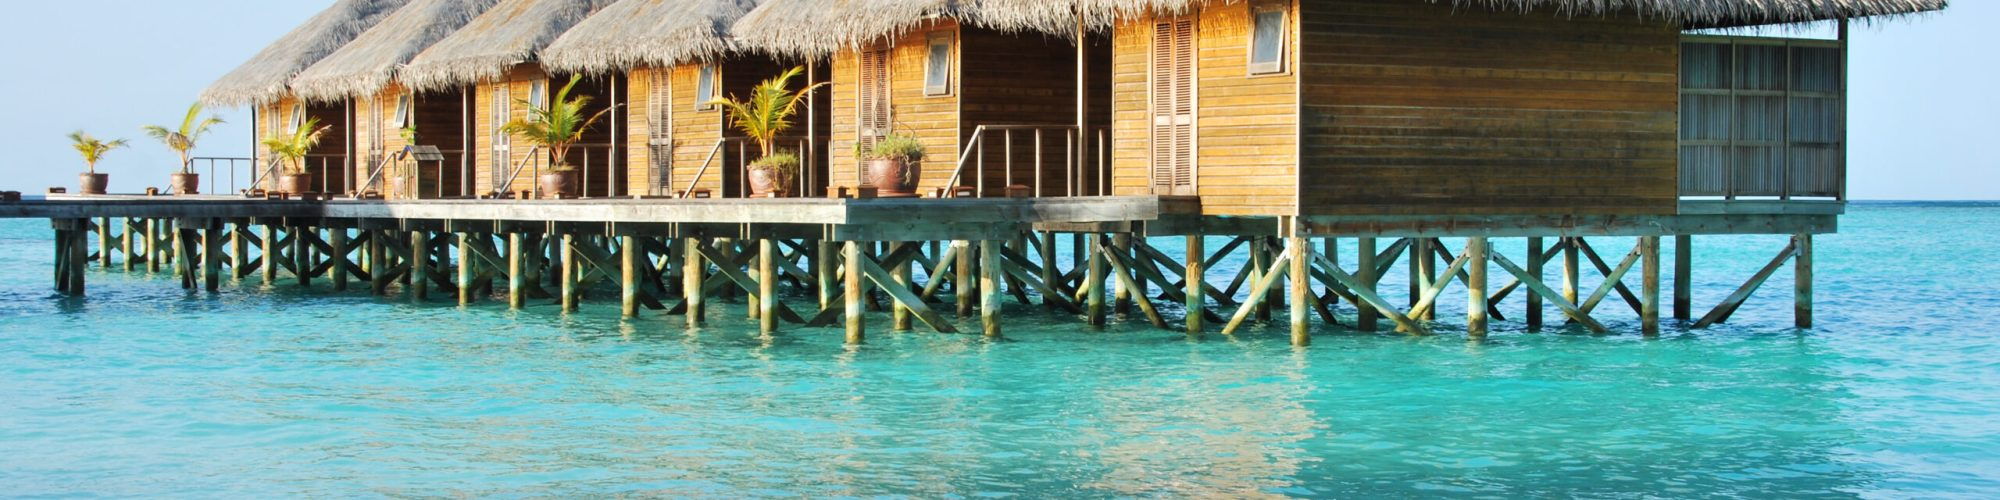 Maldives Over Water Bungalow Points Hack